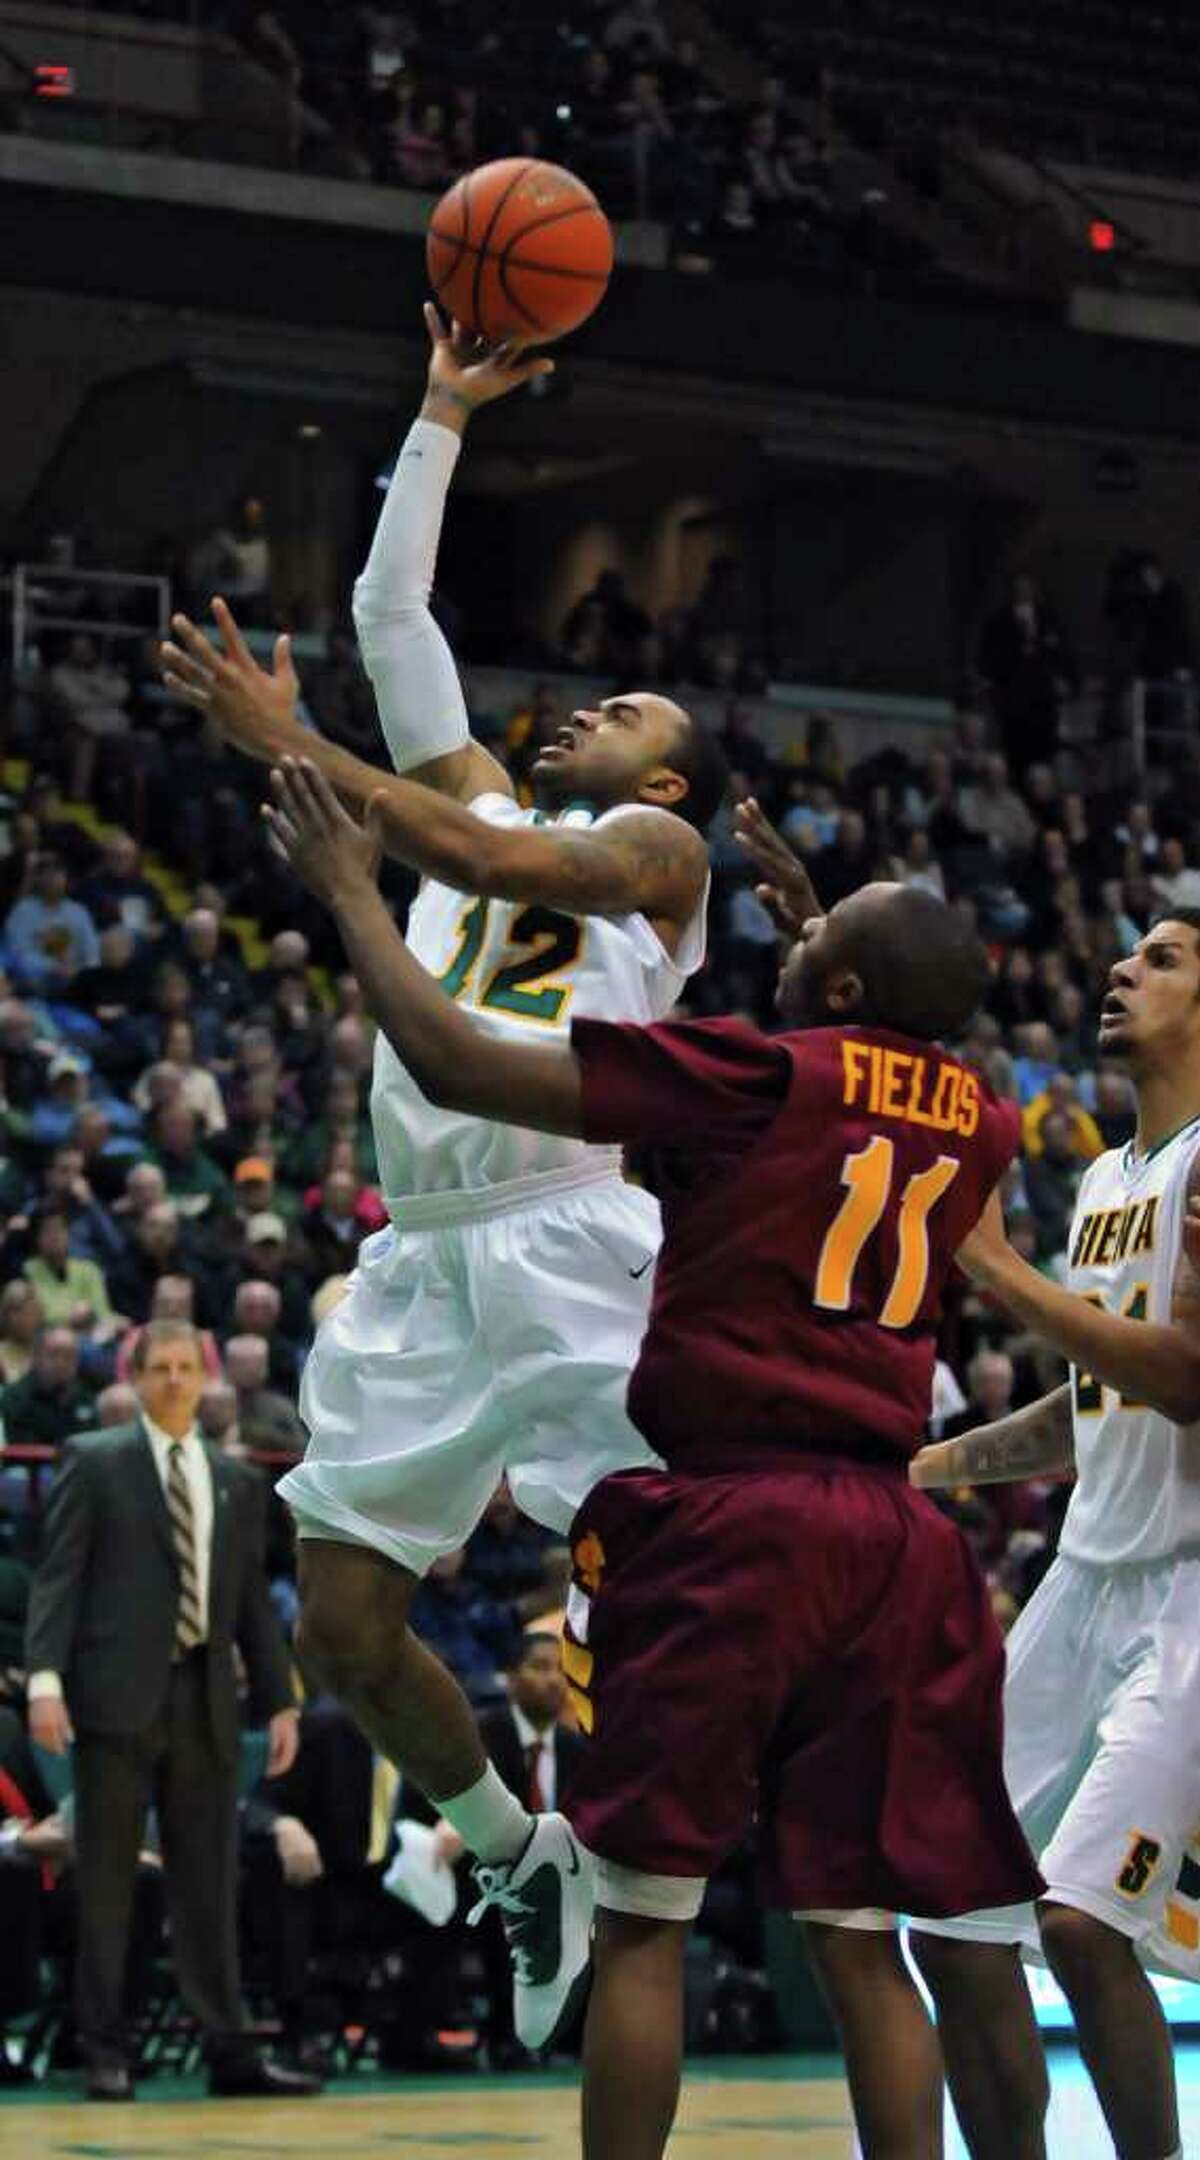 Siena College's Rakeem Brookins puts up a shot during the Saints' 73-67 men's basketball victory over Iona on Monday night at Times Union Center in Albany. The freshman point guard finished with 11 points and four assists. ( Philip Kamrass / Times Union )